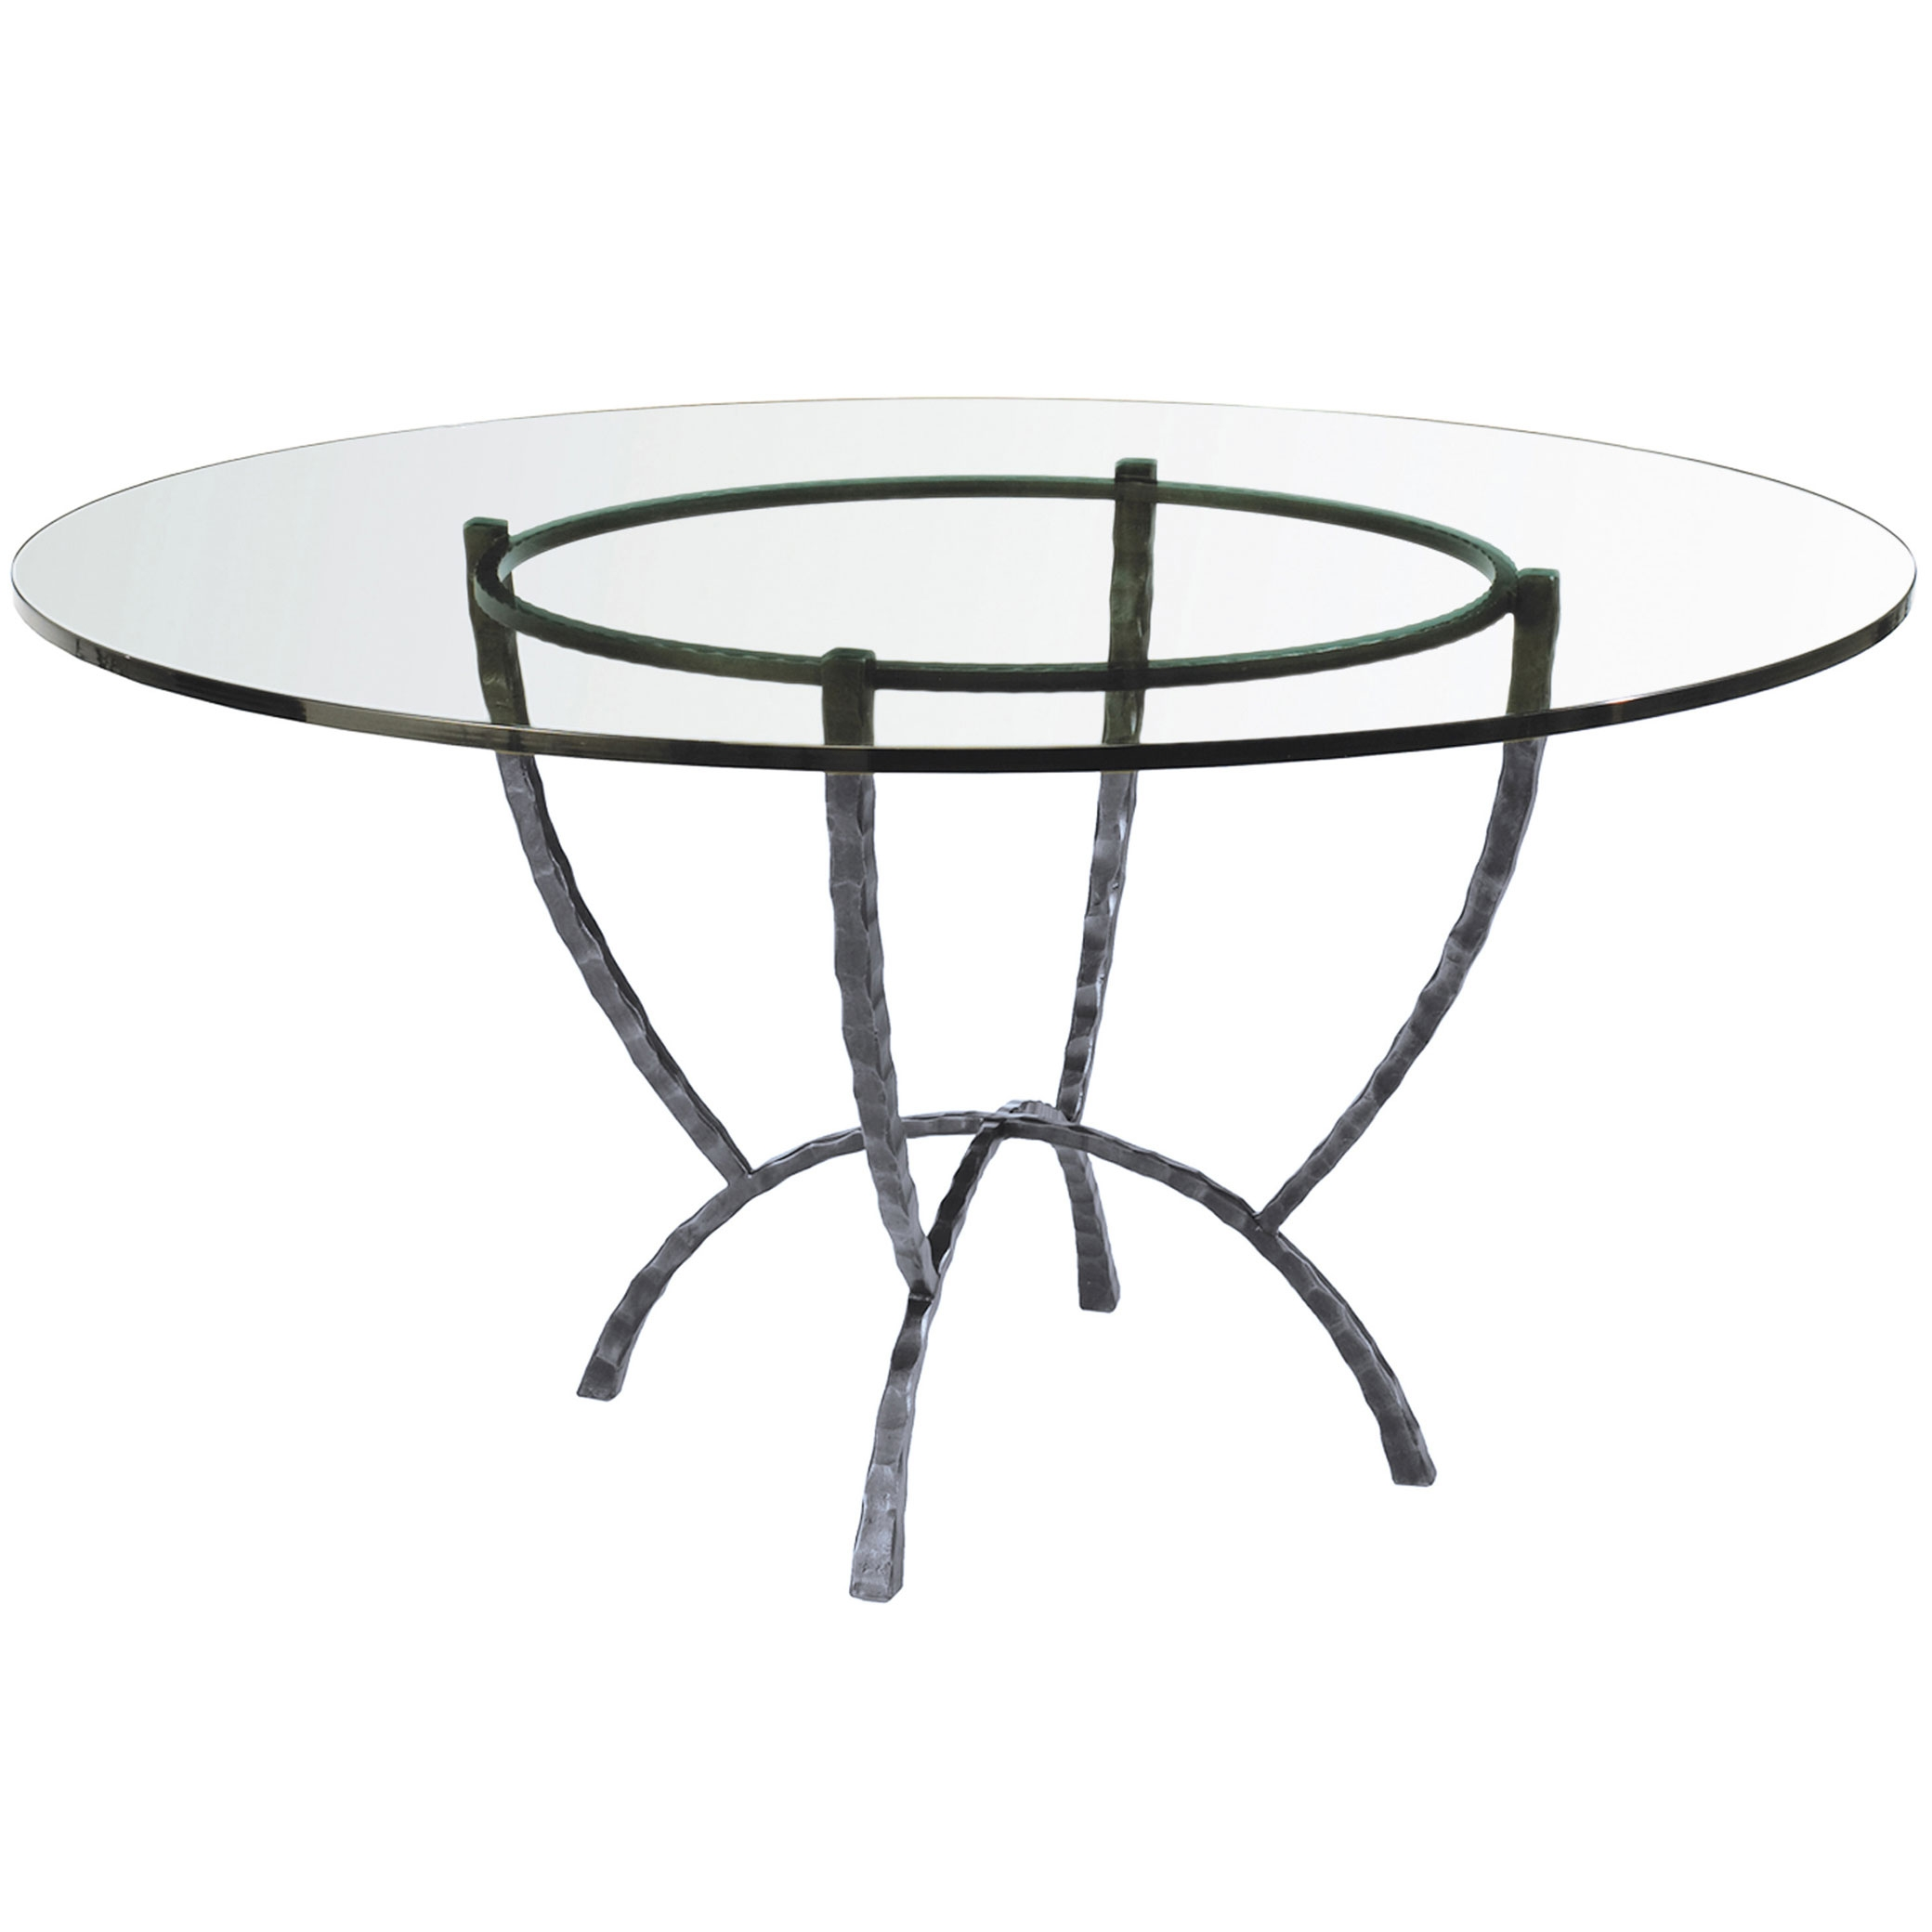 "Wrought Iron Hudson 50"" Round Dining Table"